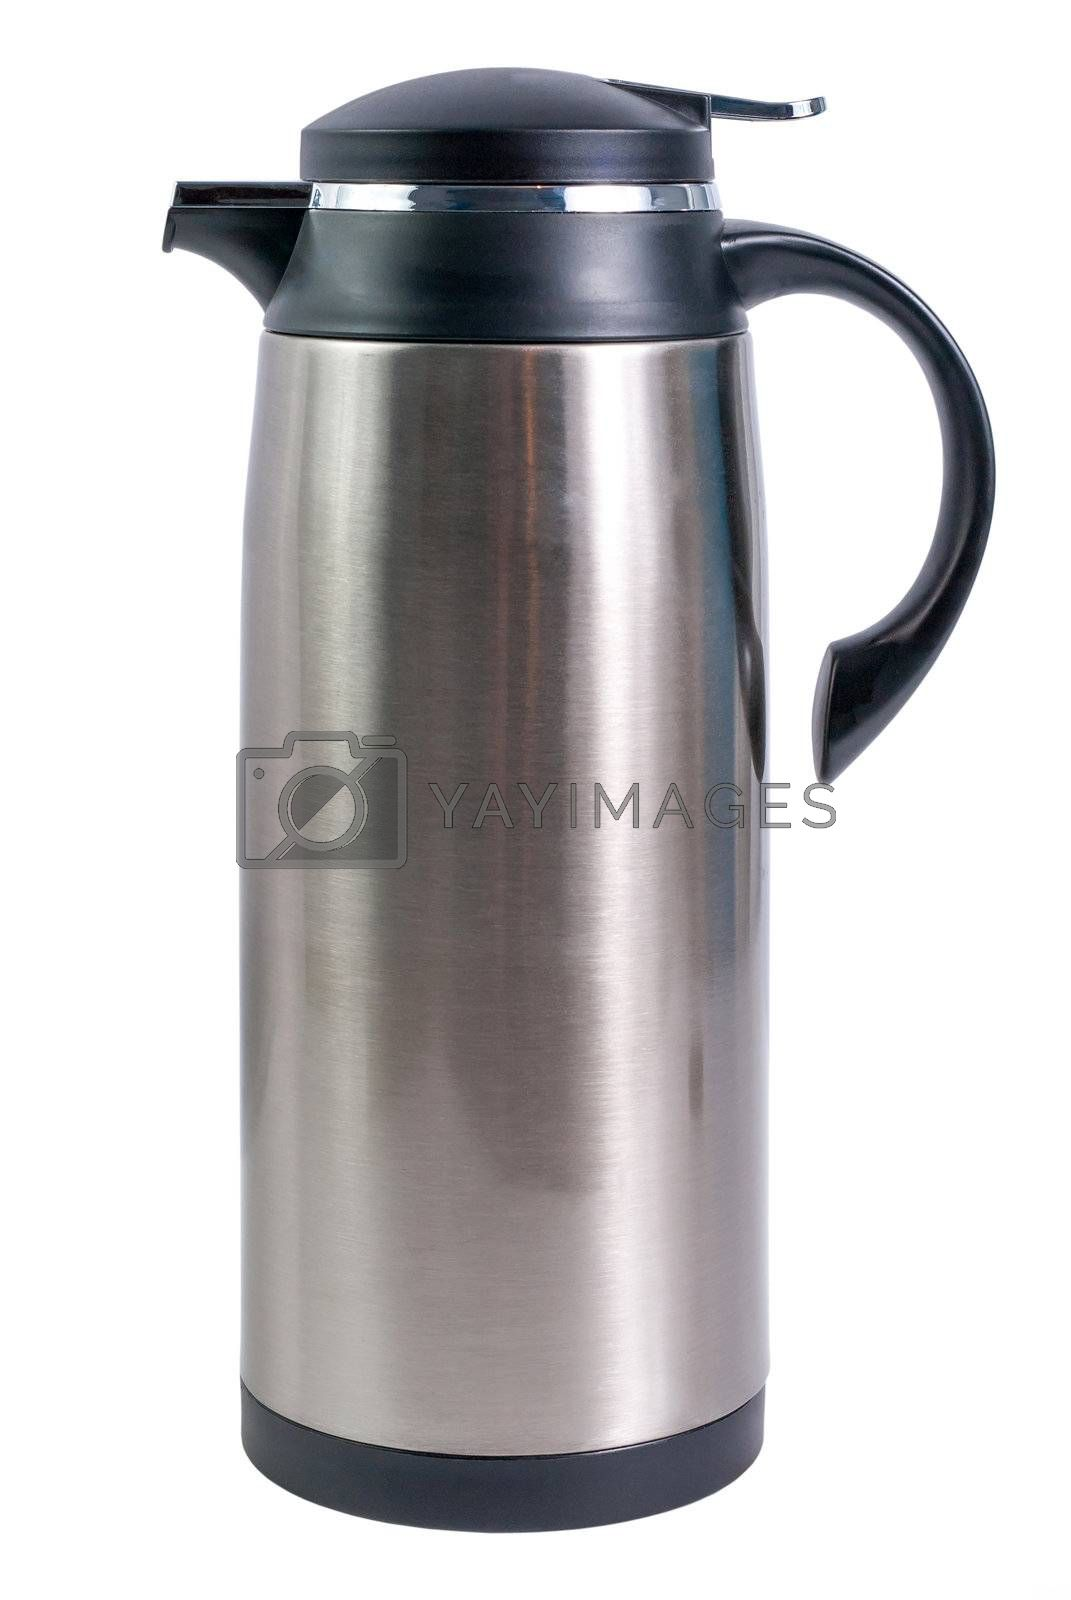 Thermo flask for hot drinks by firewings